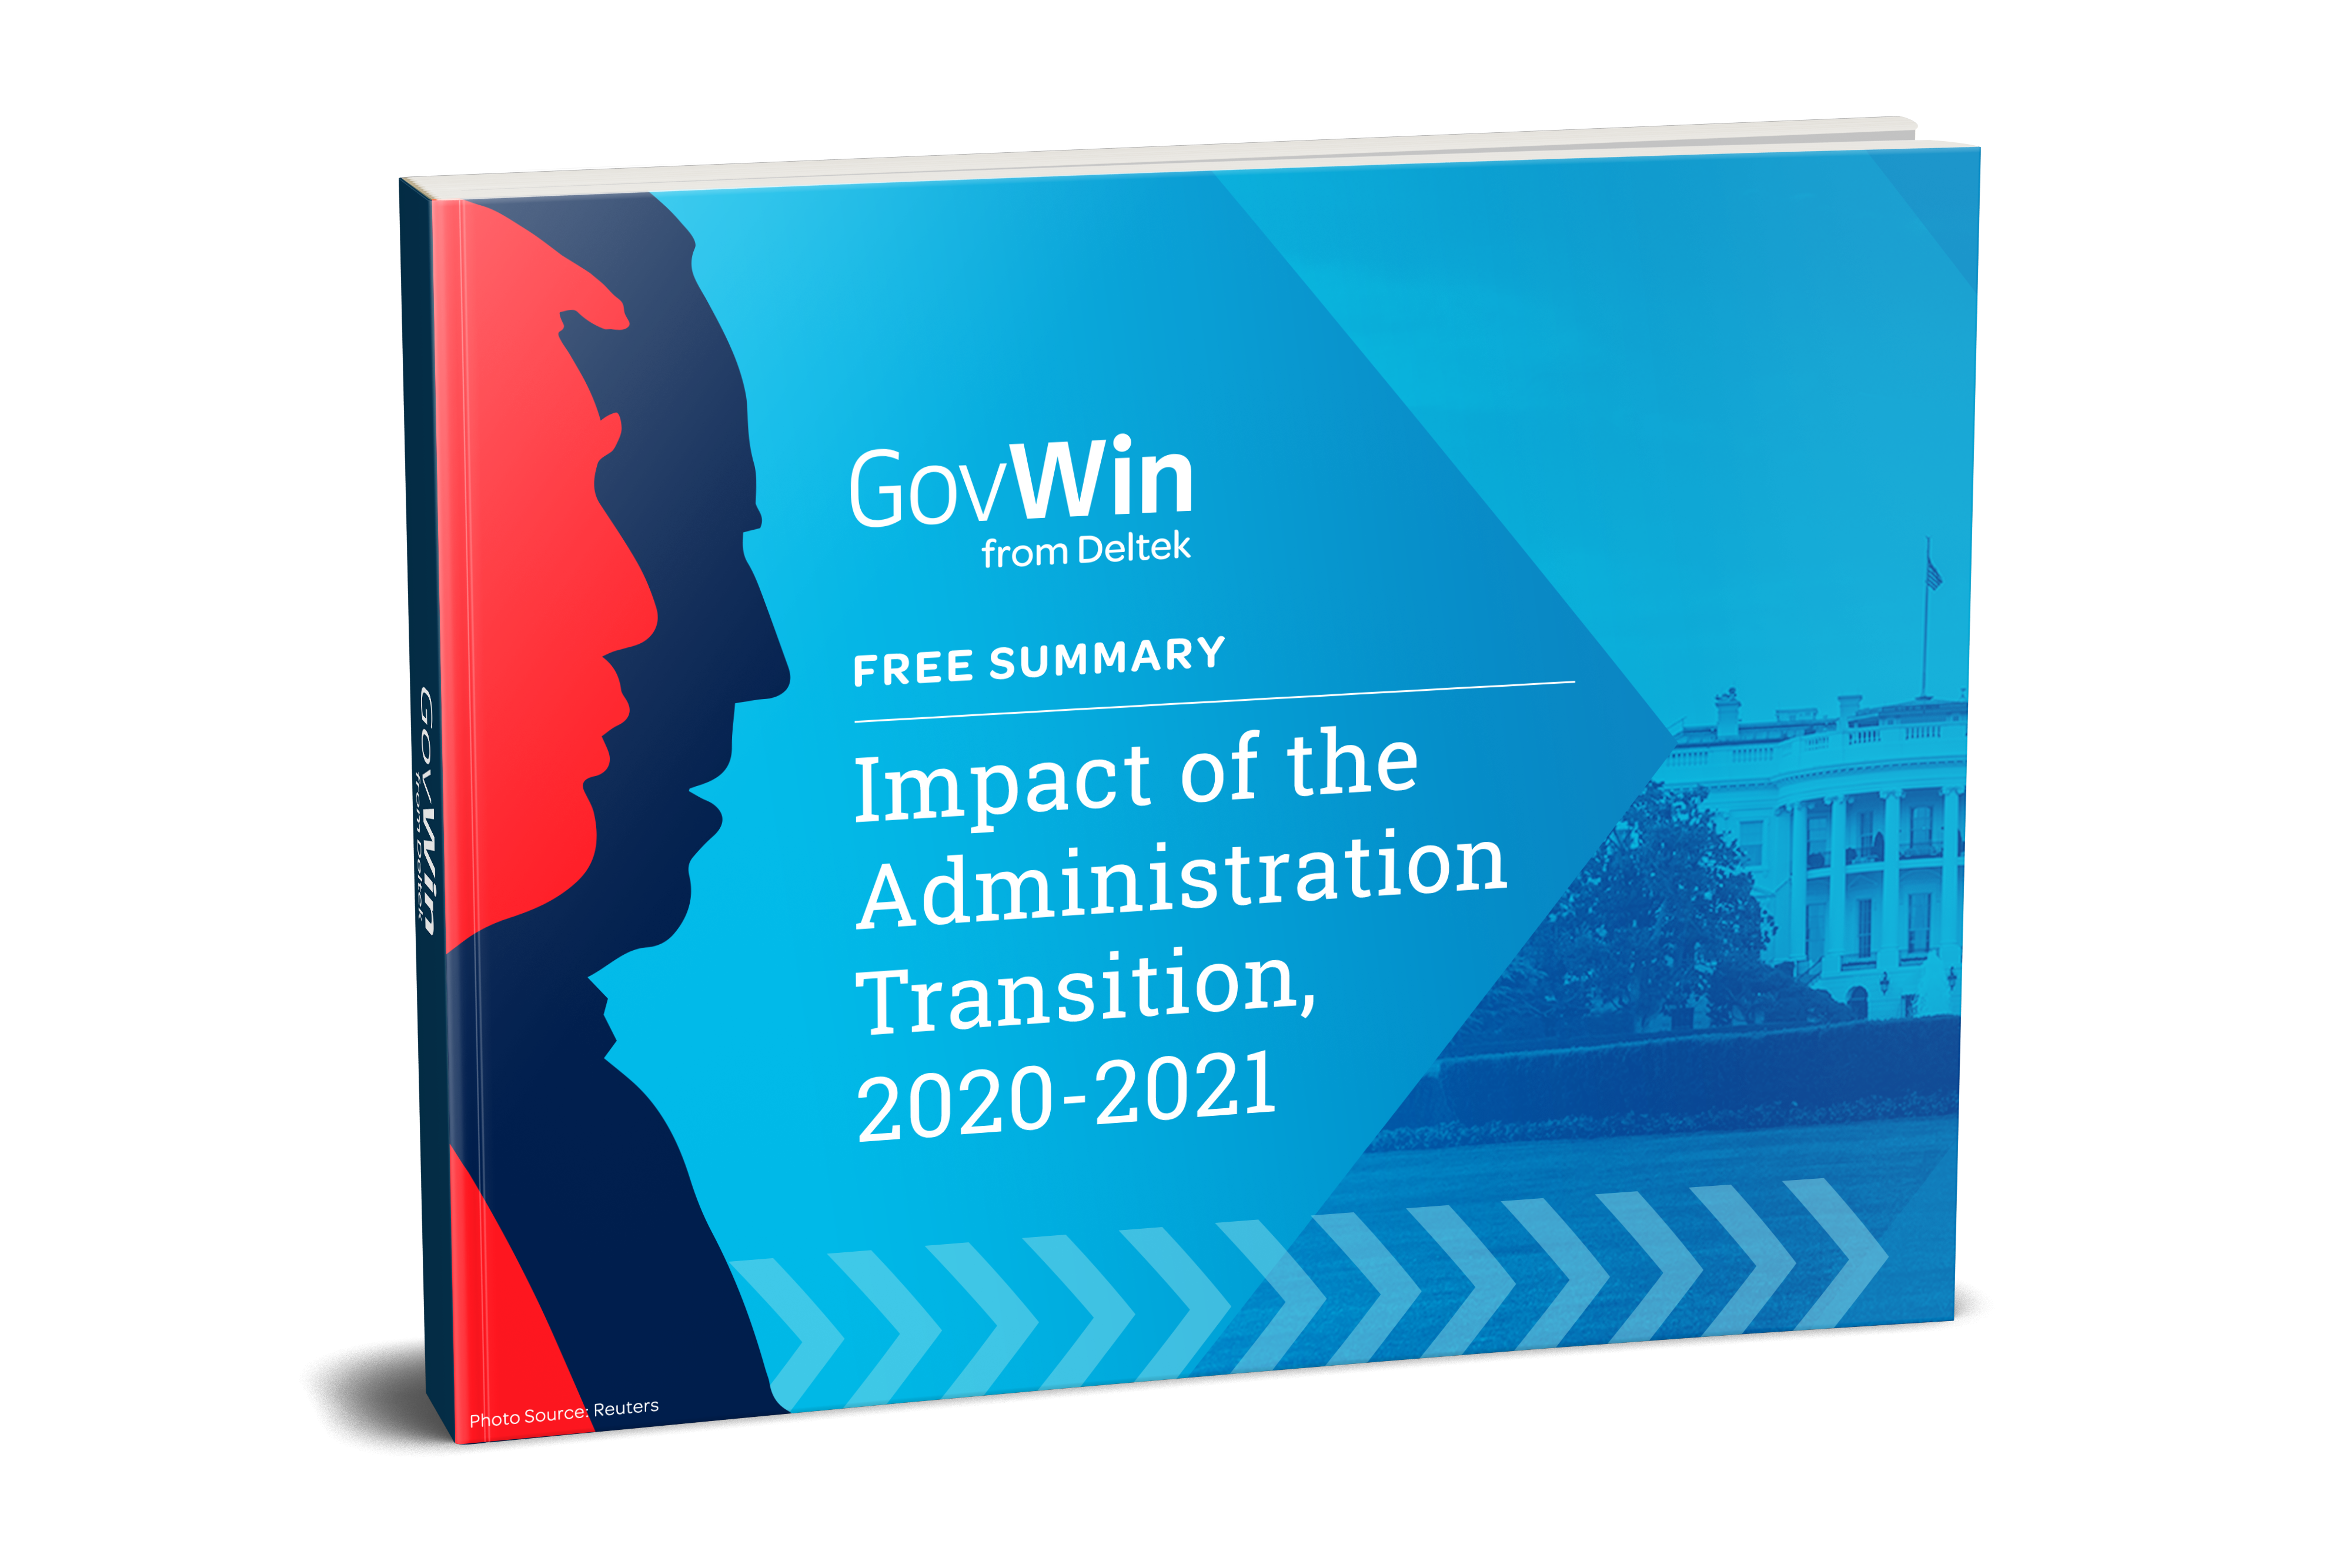 Impact of the Administration Transition, 2020-2021